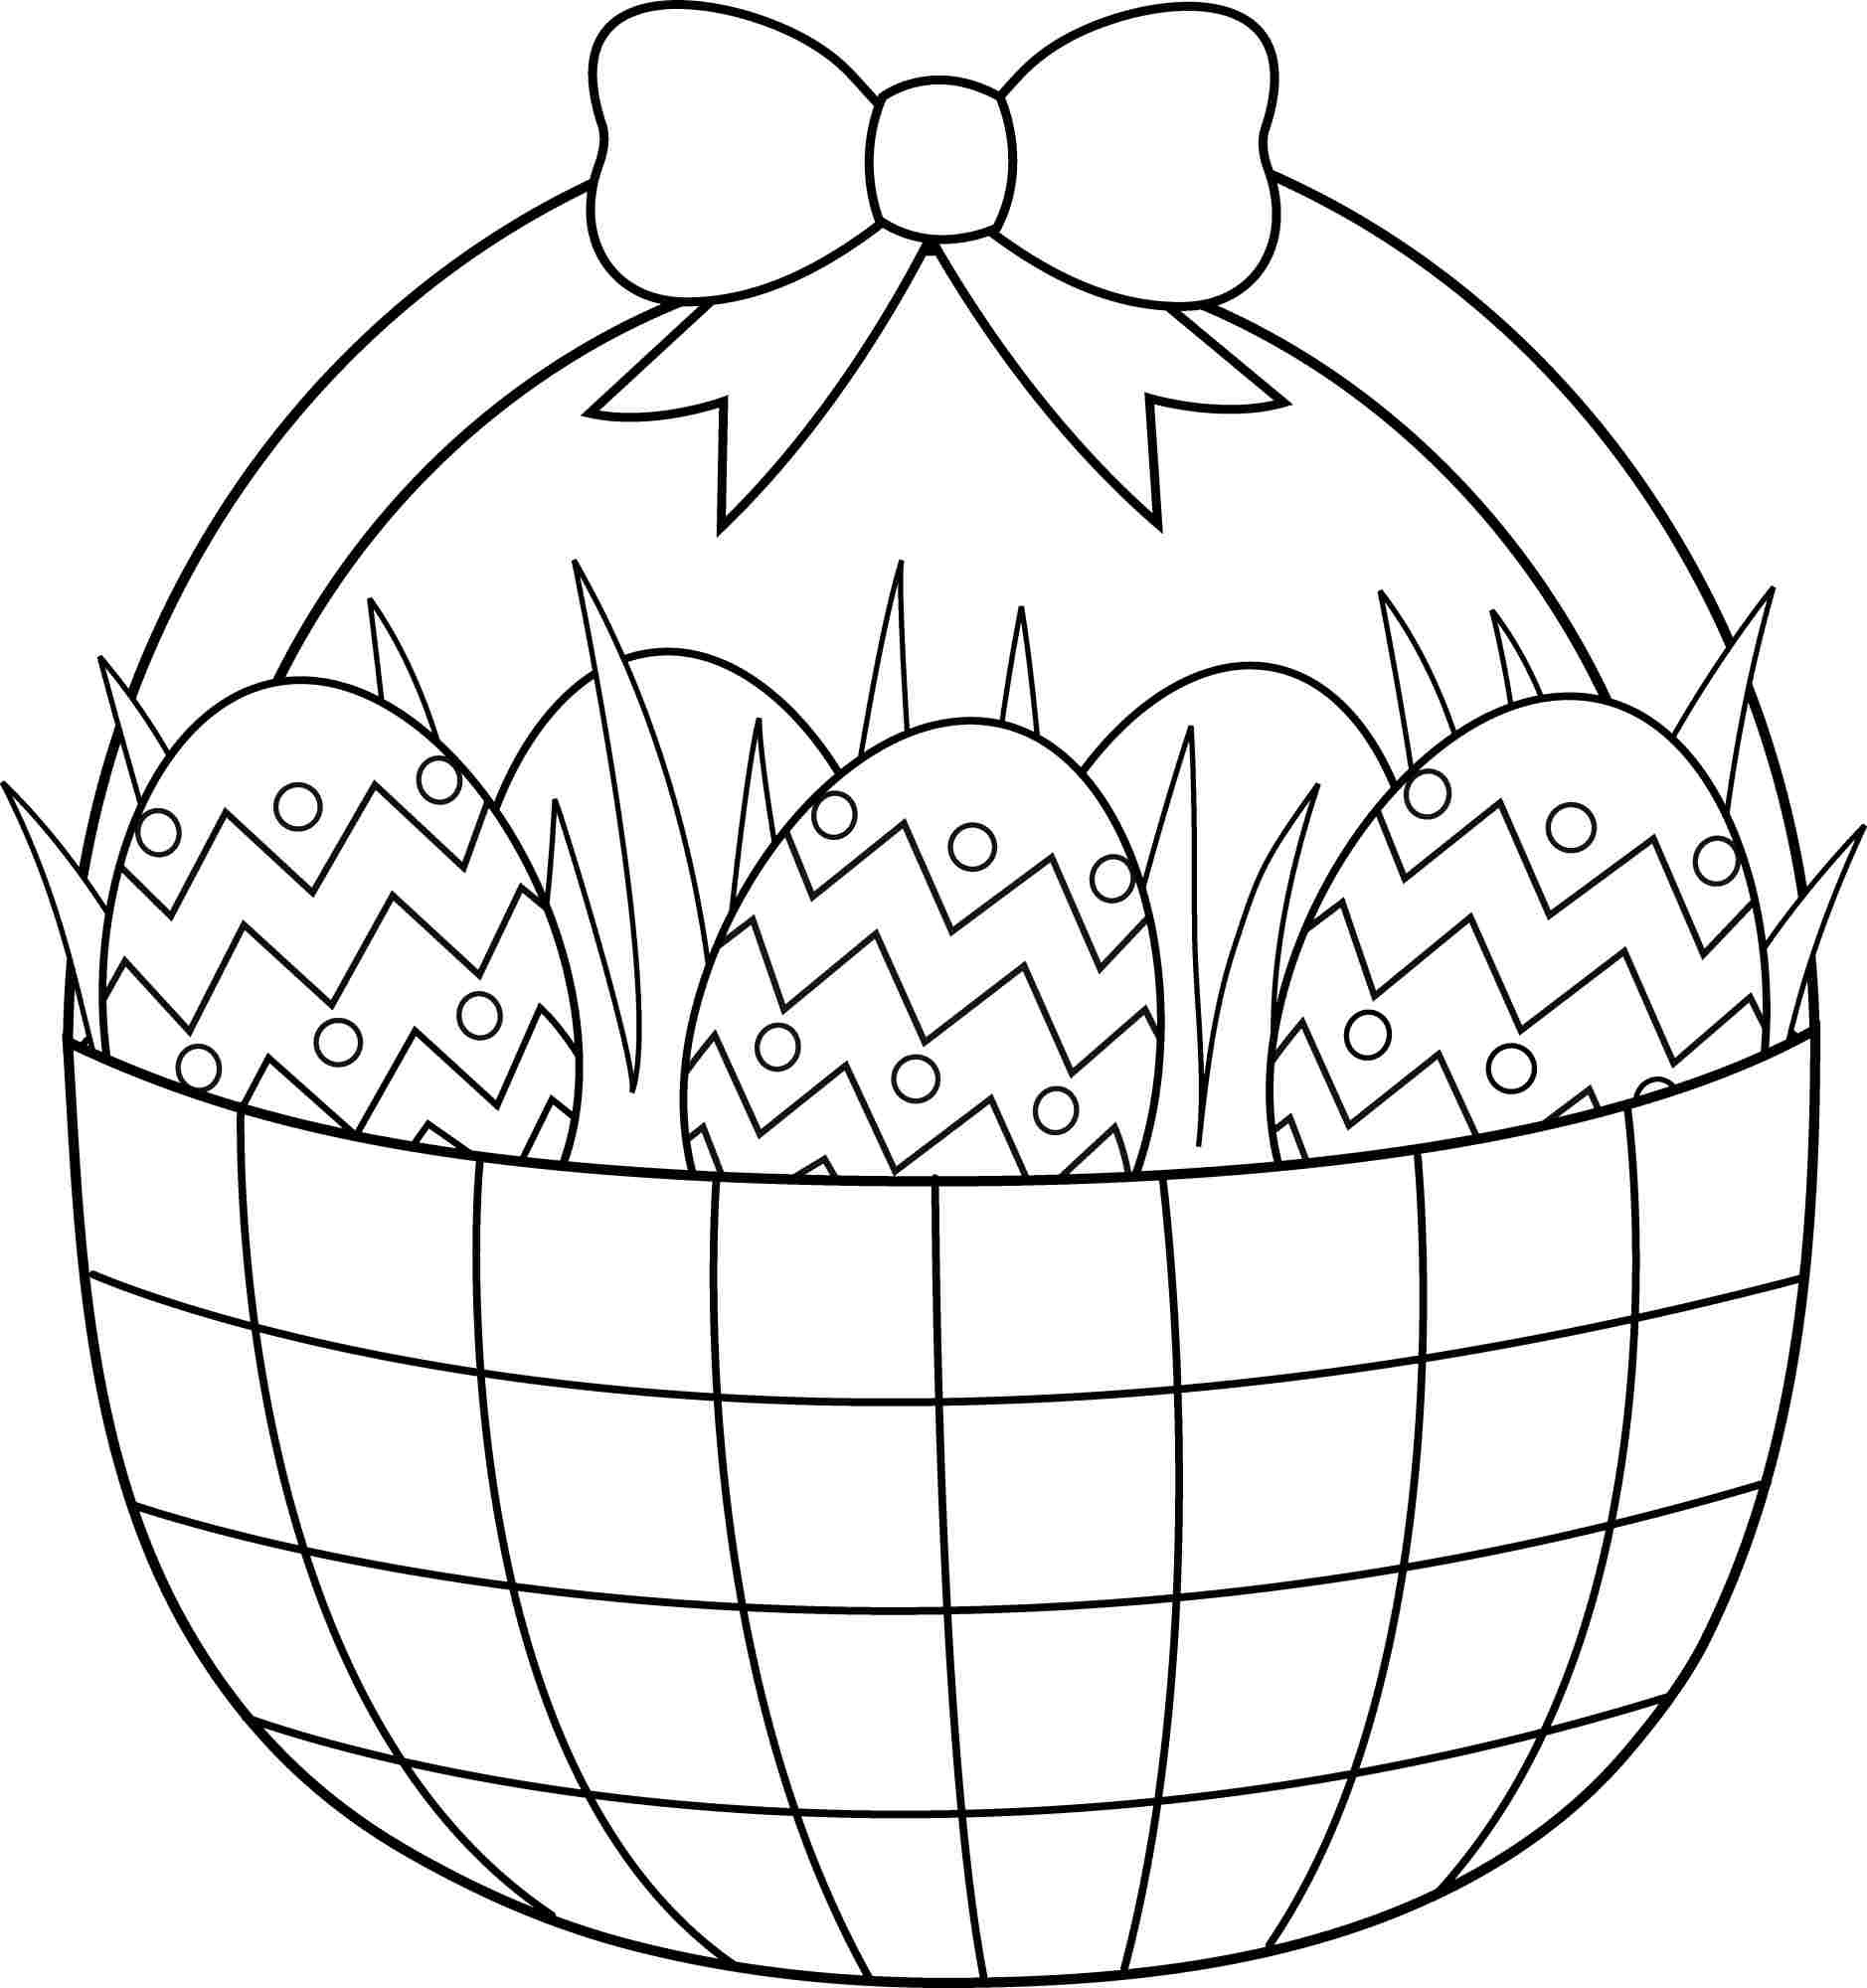 Printable Easter Coloring Pages Free Easter Coloring Pages Printable - Easter Coloring Pages Free Printable